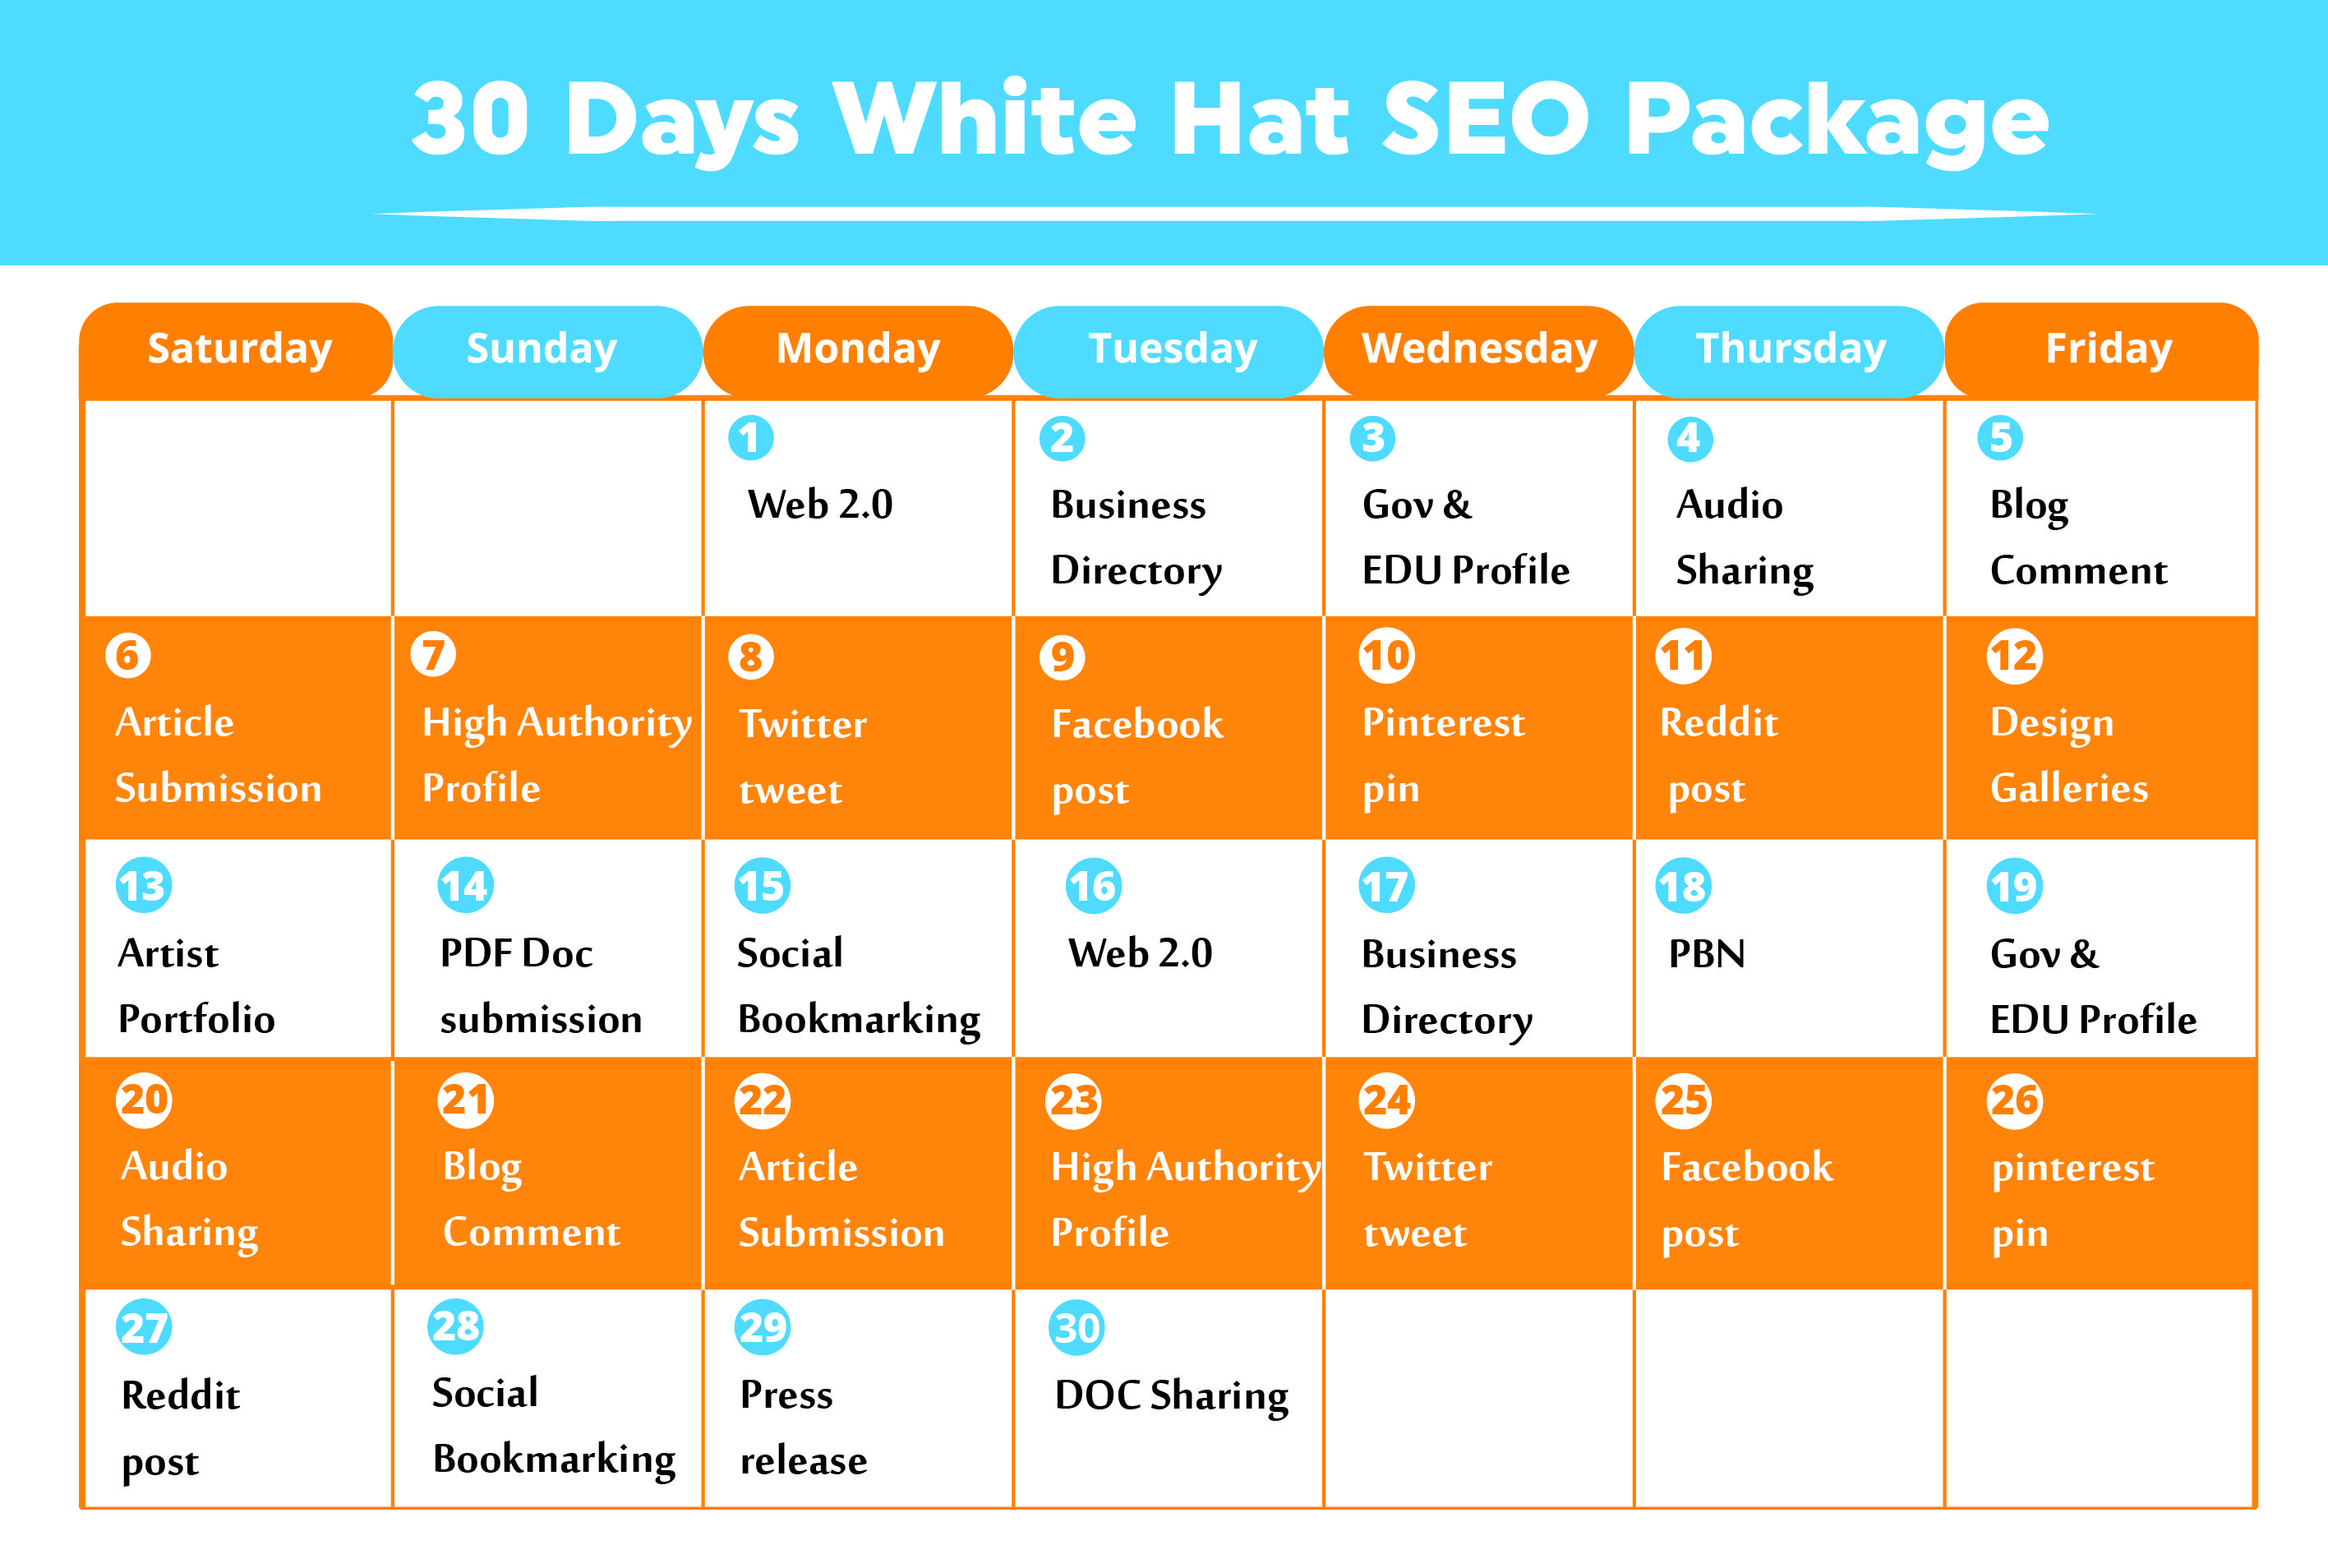 30 Days Link Building Daily White Hat Seo Package 2018 With Pbn